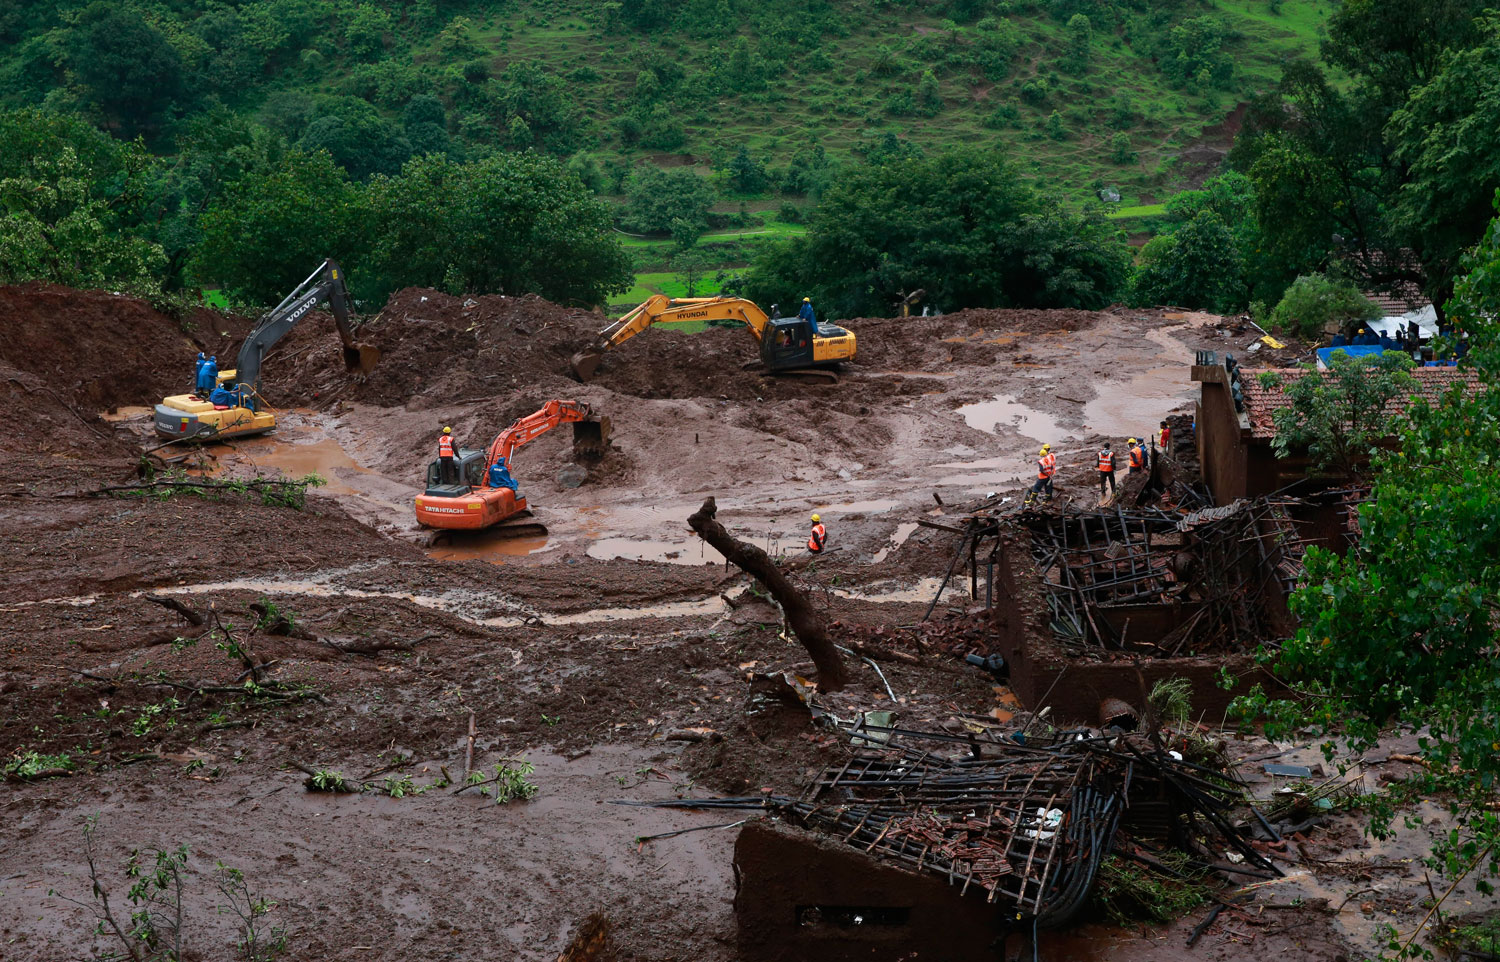 Earthmovers clear mud and slush at the site of a landslide in Malin village, in the western Indian state of Maharashtra on Aug. 1, 2014.